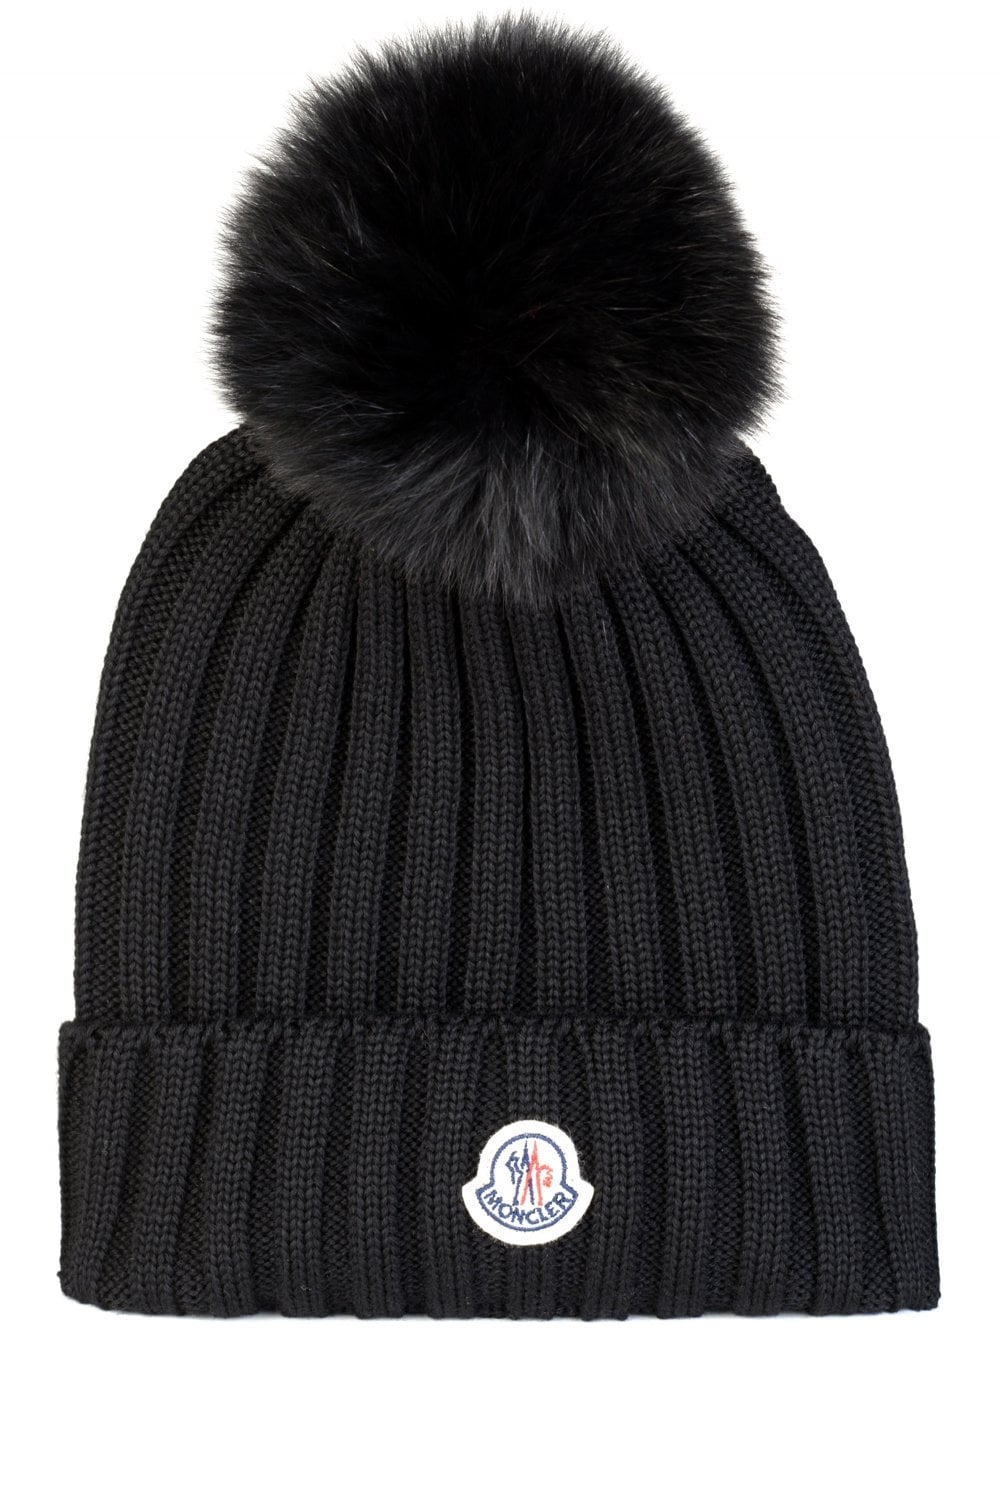 Moncler Women s Ribbed Fur Bobble Beanie Black 285a9f6f8f7